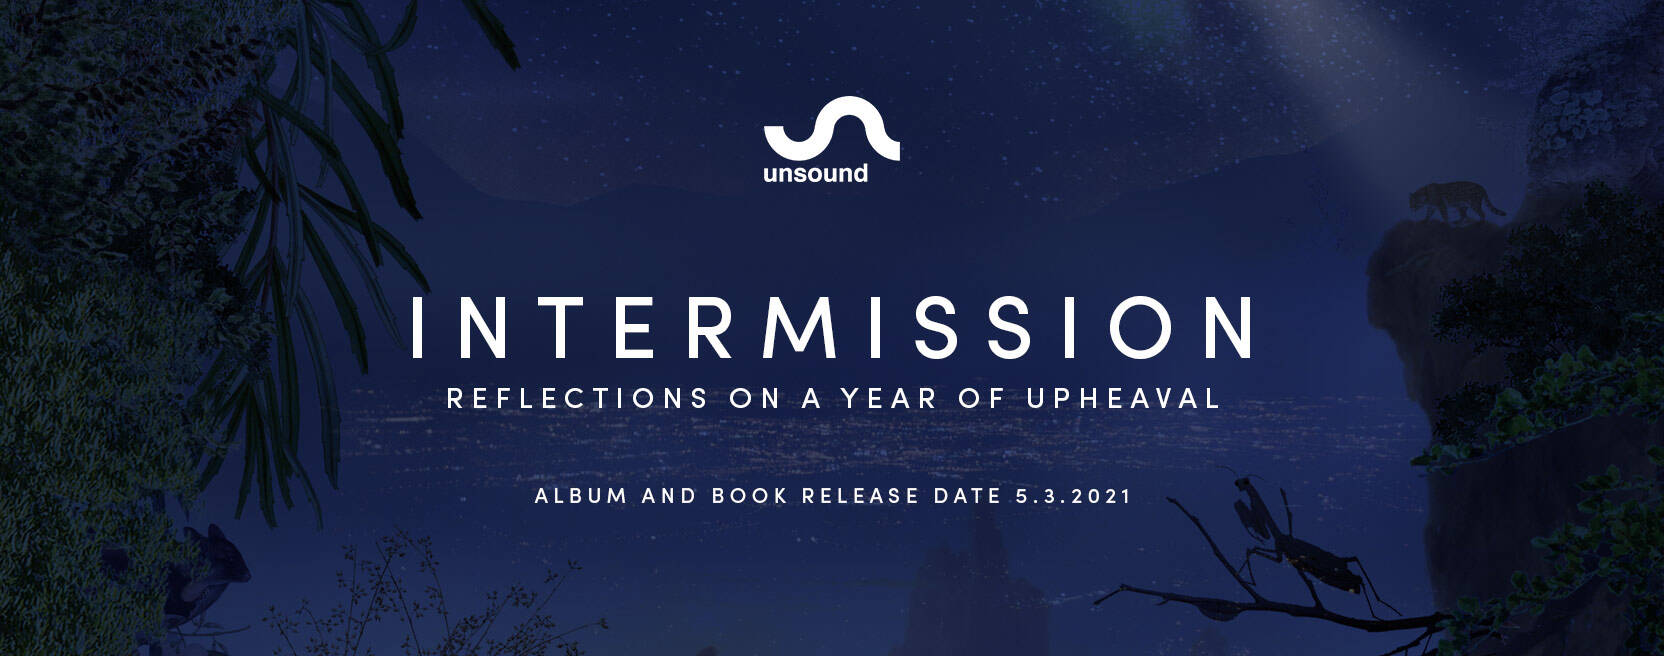 Intermission book and album available March 5th banner